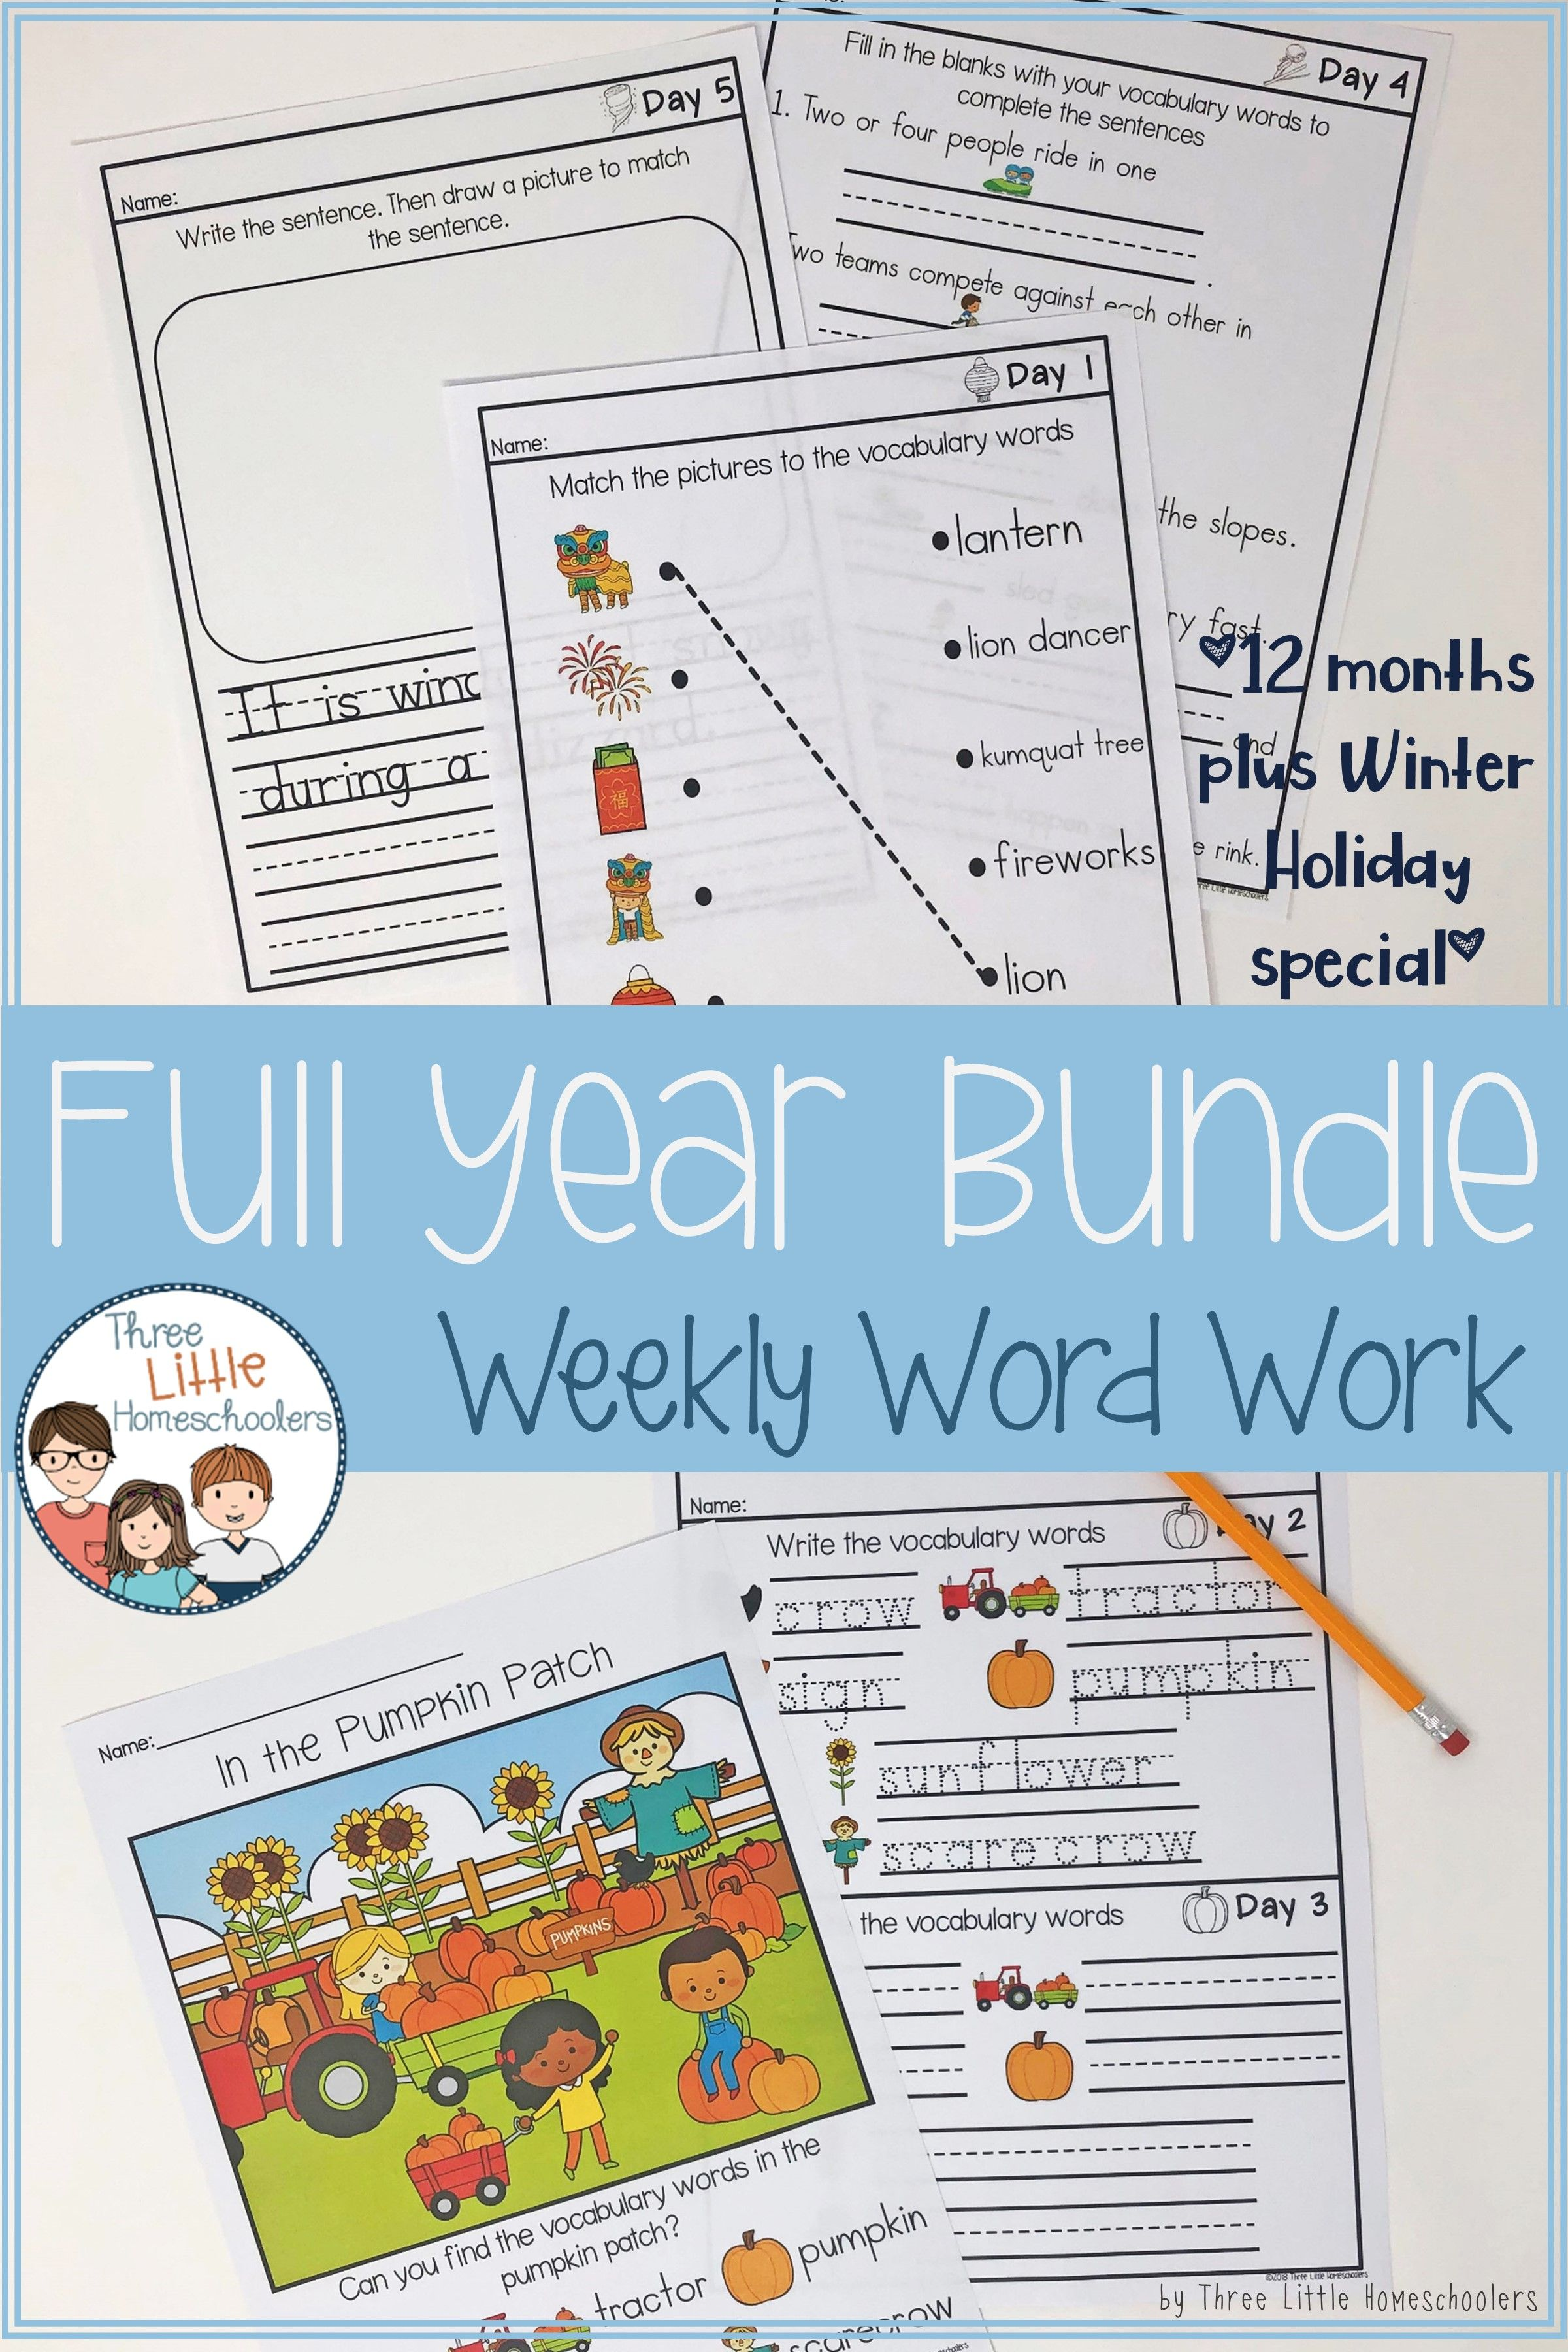 Daily Weekly Thematic Vocabulary Word Work Full Year Bundle